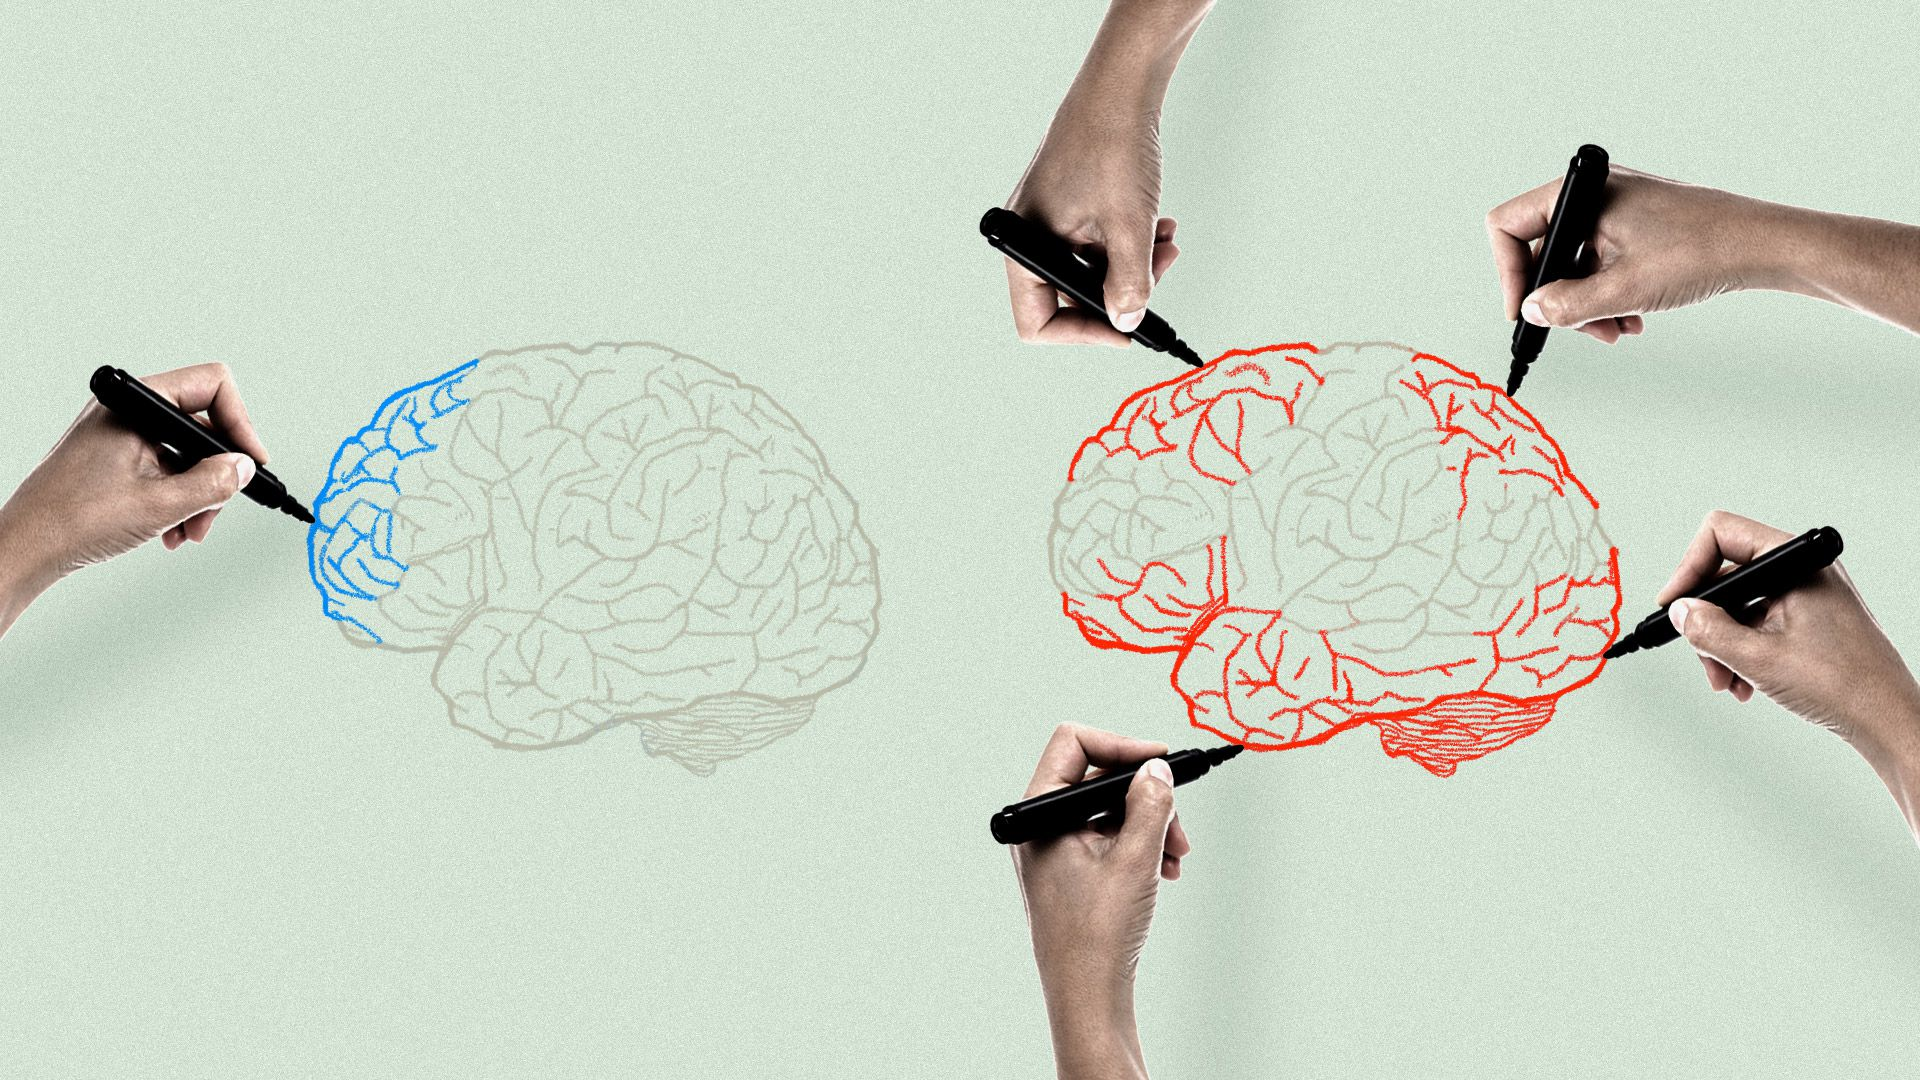 Illustration of hands drawing brains